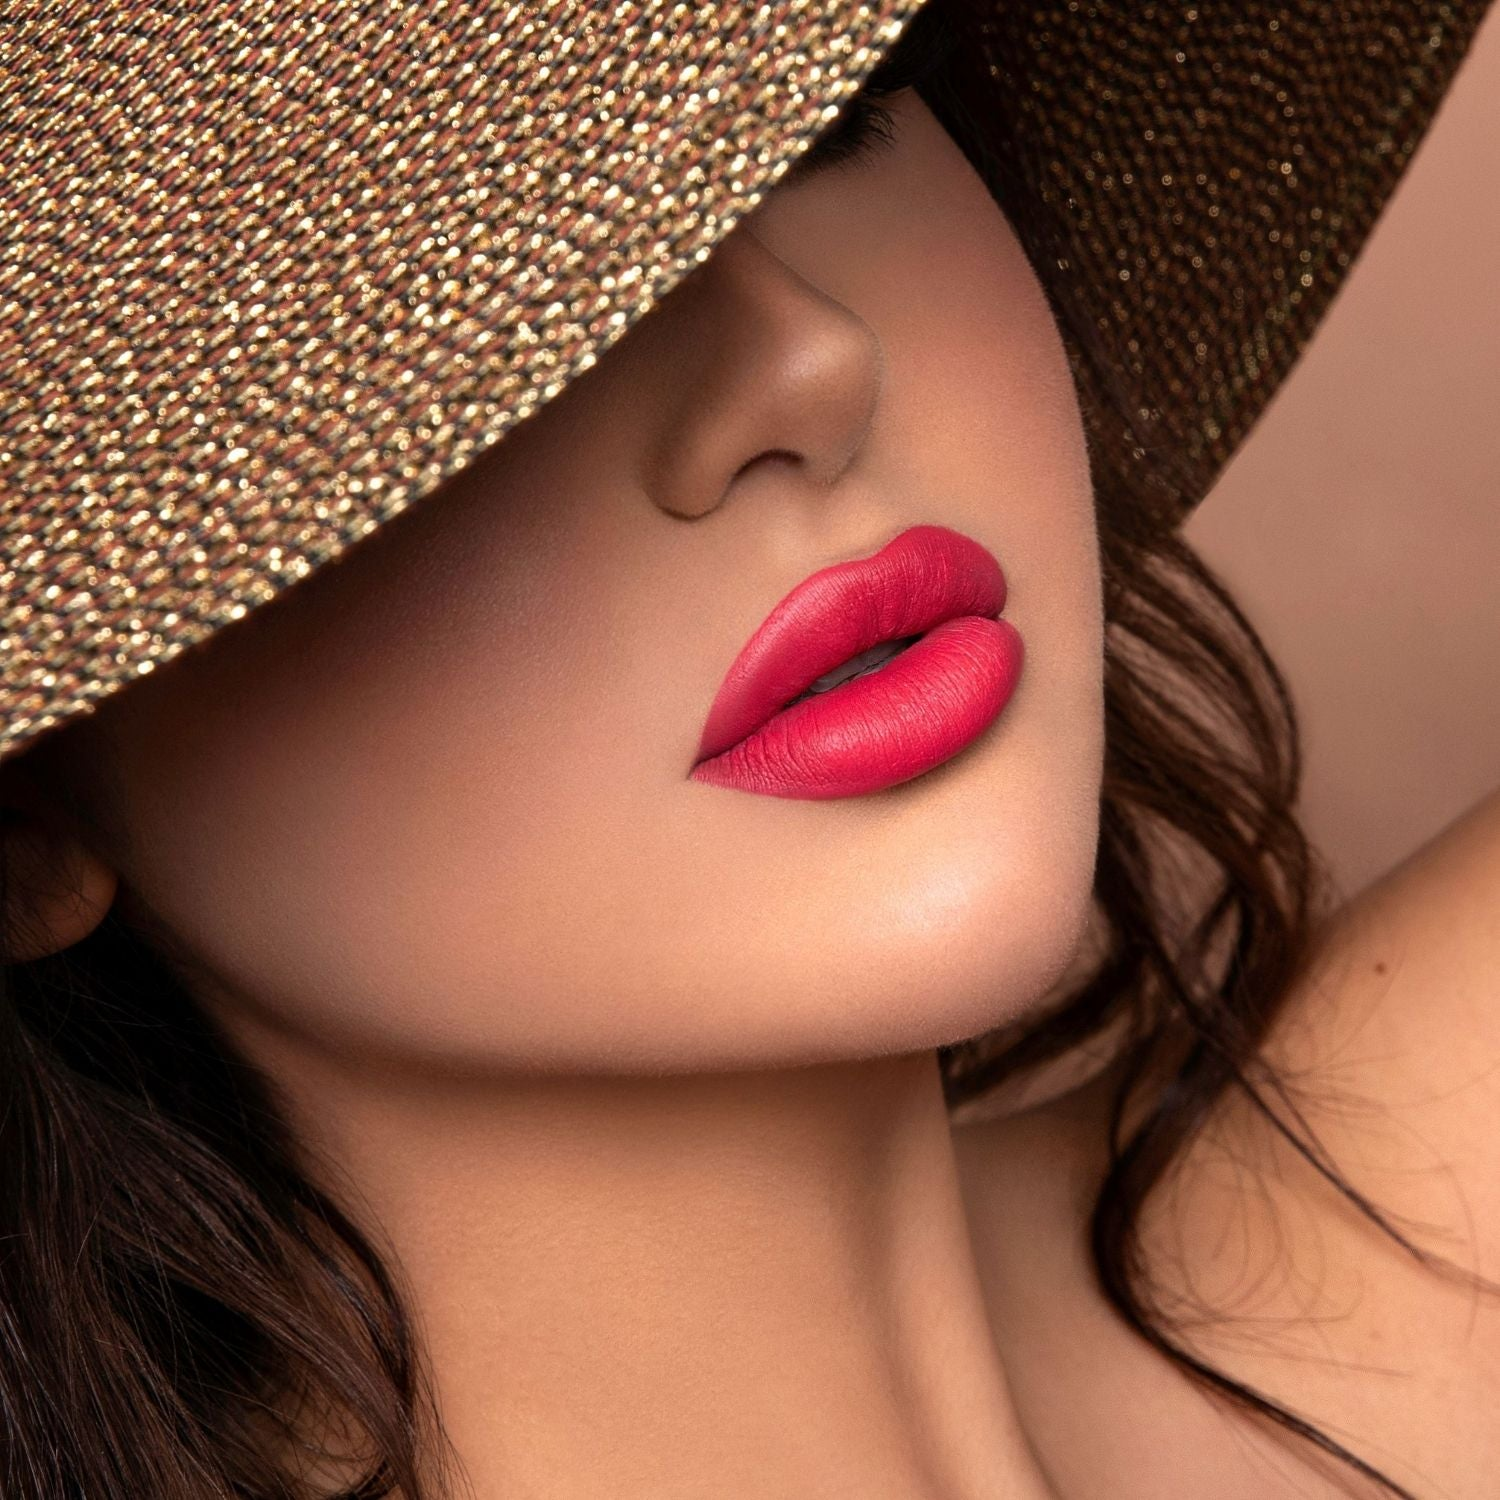 Tokyo coral pink lipstick model with summer hat